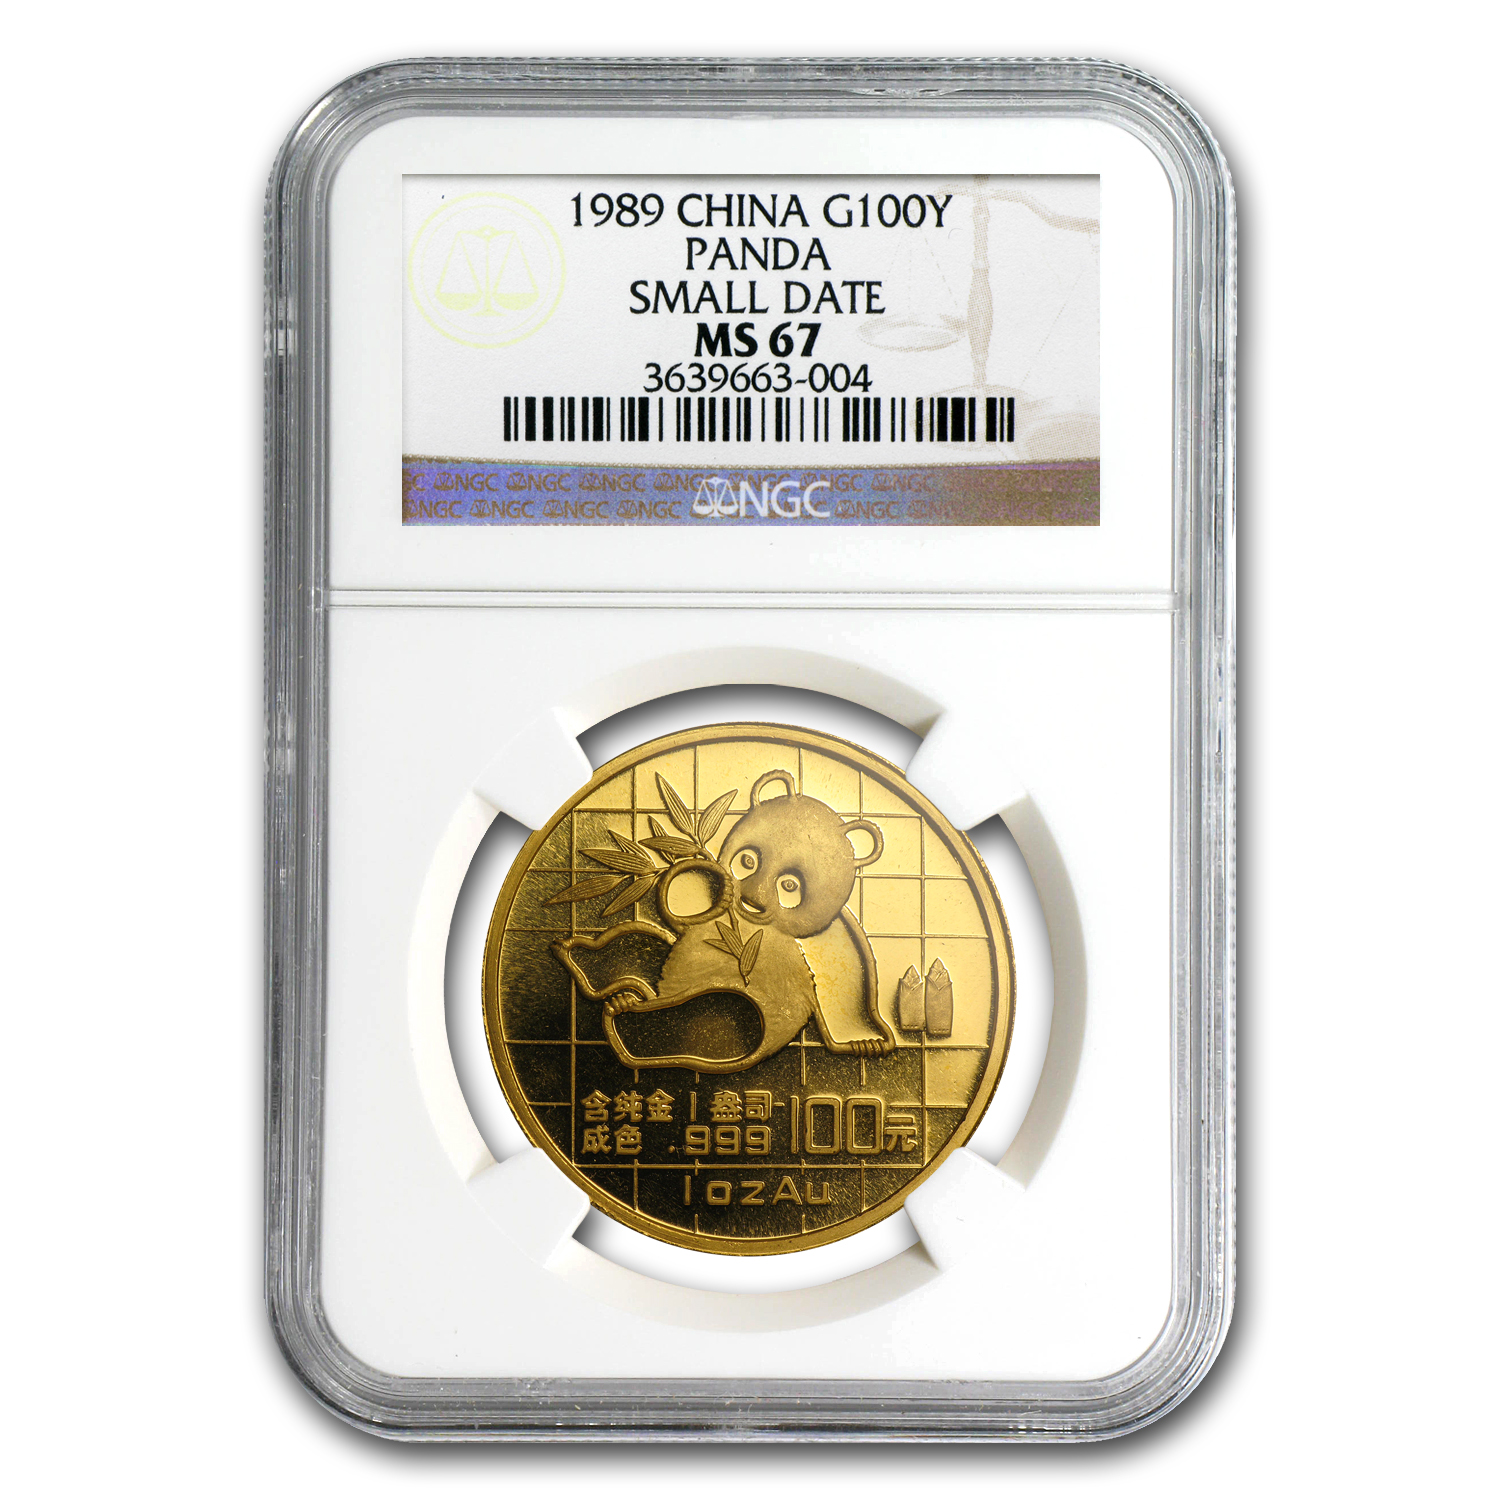 1989 1 oz Gold Chinese Panda Small Date MS-67 NGC